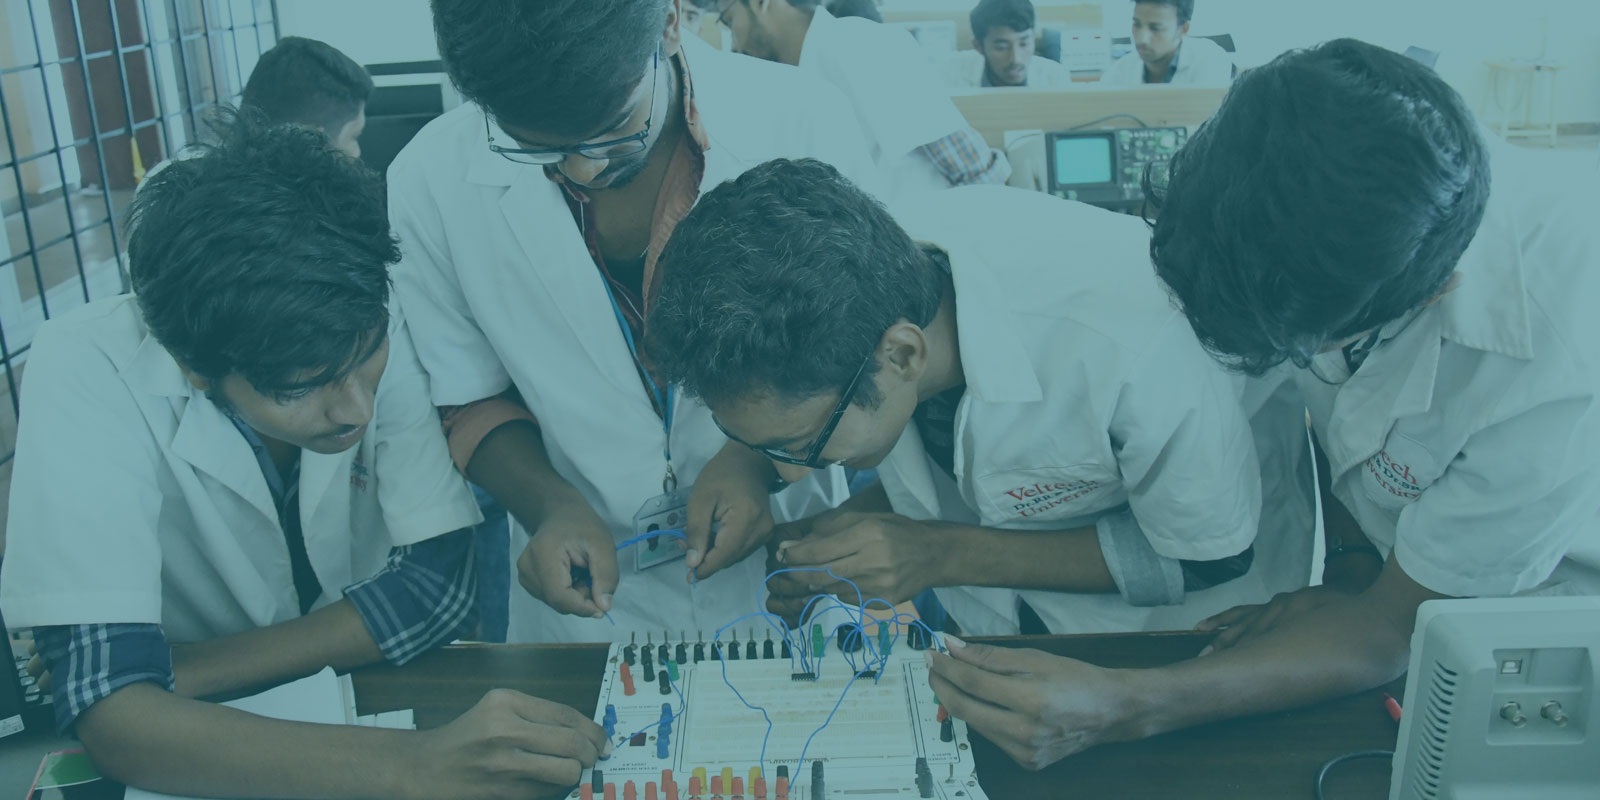 Vel Tech Electronics And Communication Department Books To Learn Conceptually On Learning About Engineering